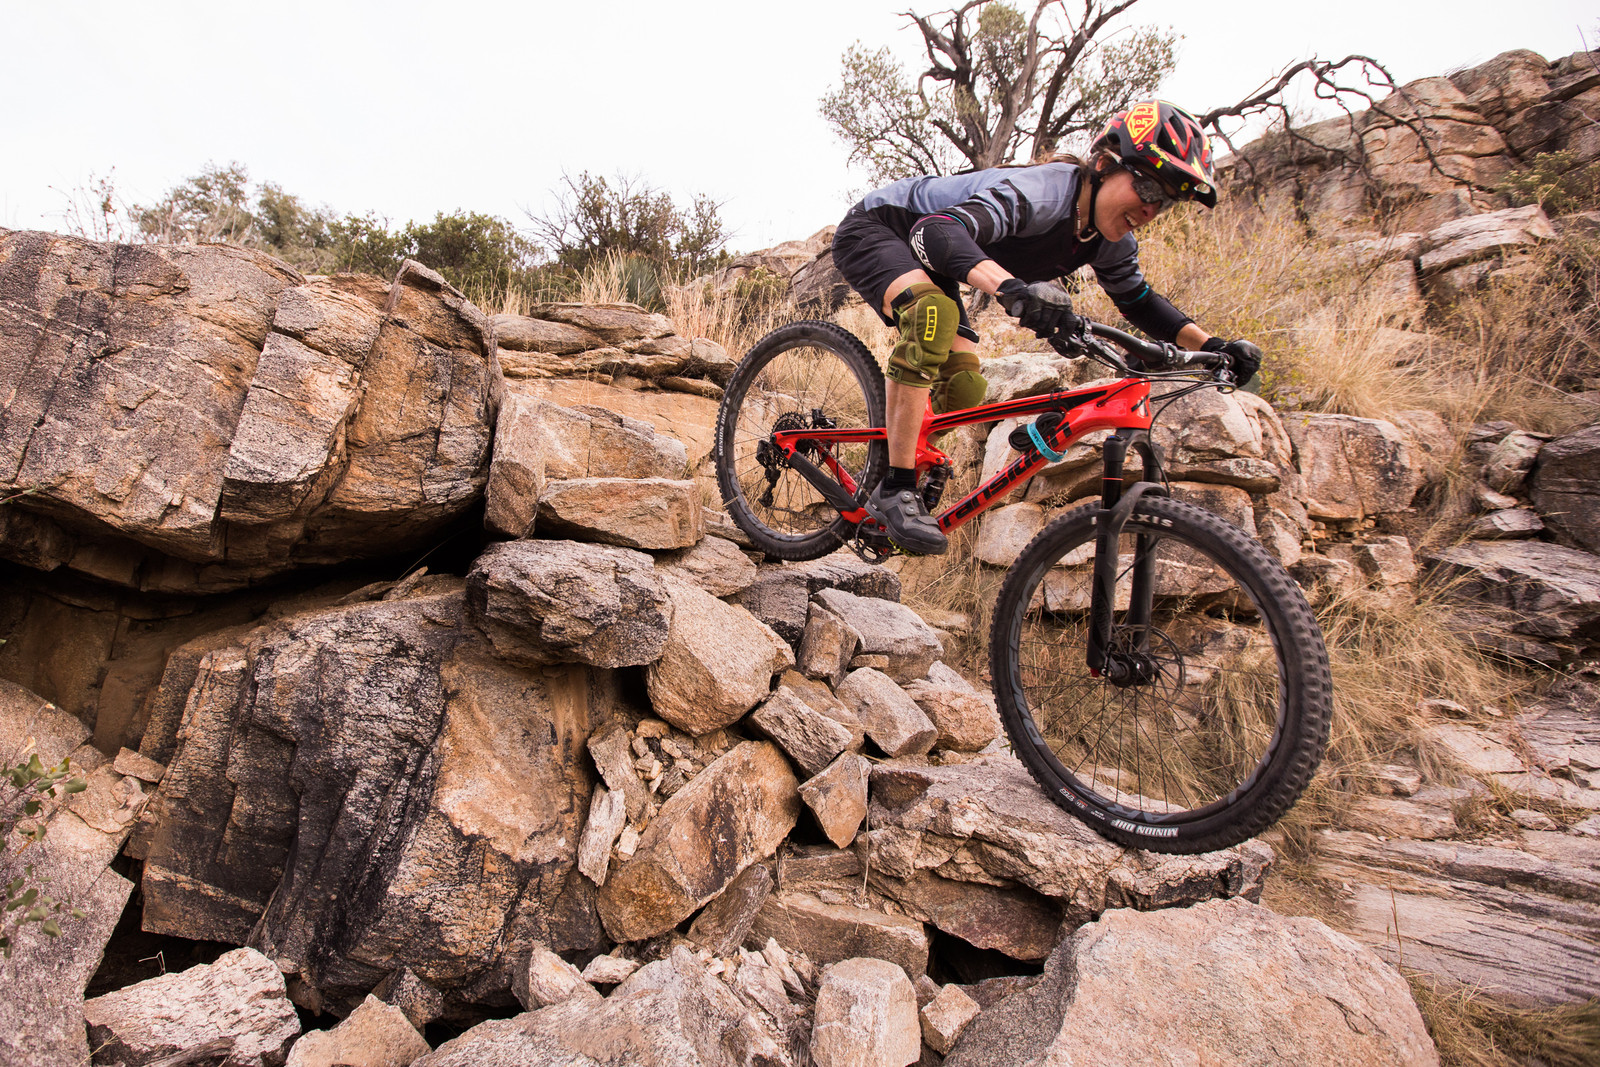 Transition Scout Carbon #3 - 2017 Vital MTB Test Sessions - Transition Scout Carbon #3 - 2017 Vital MTB Test Sessions - Mountain Biking Pictures - Vital MTB